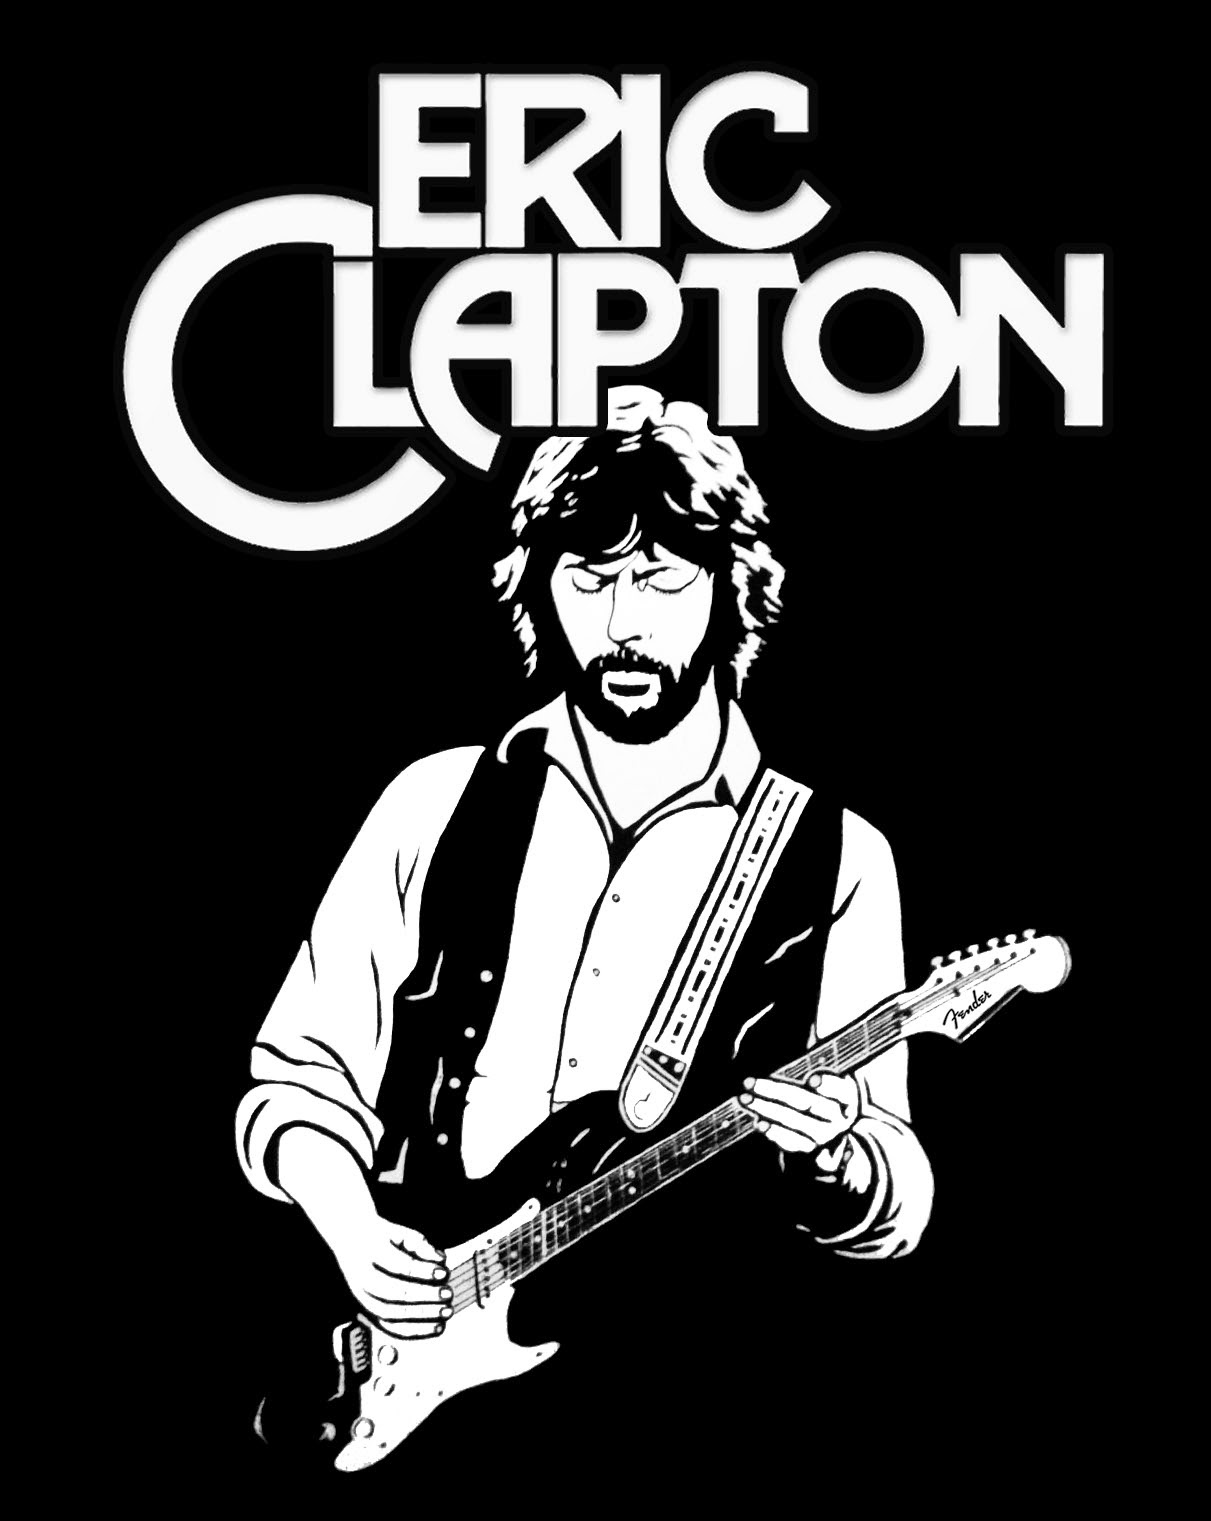 Eric Clapton Logo on game of thrones wallpaper